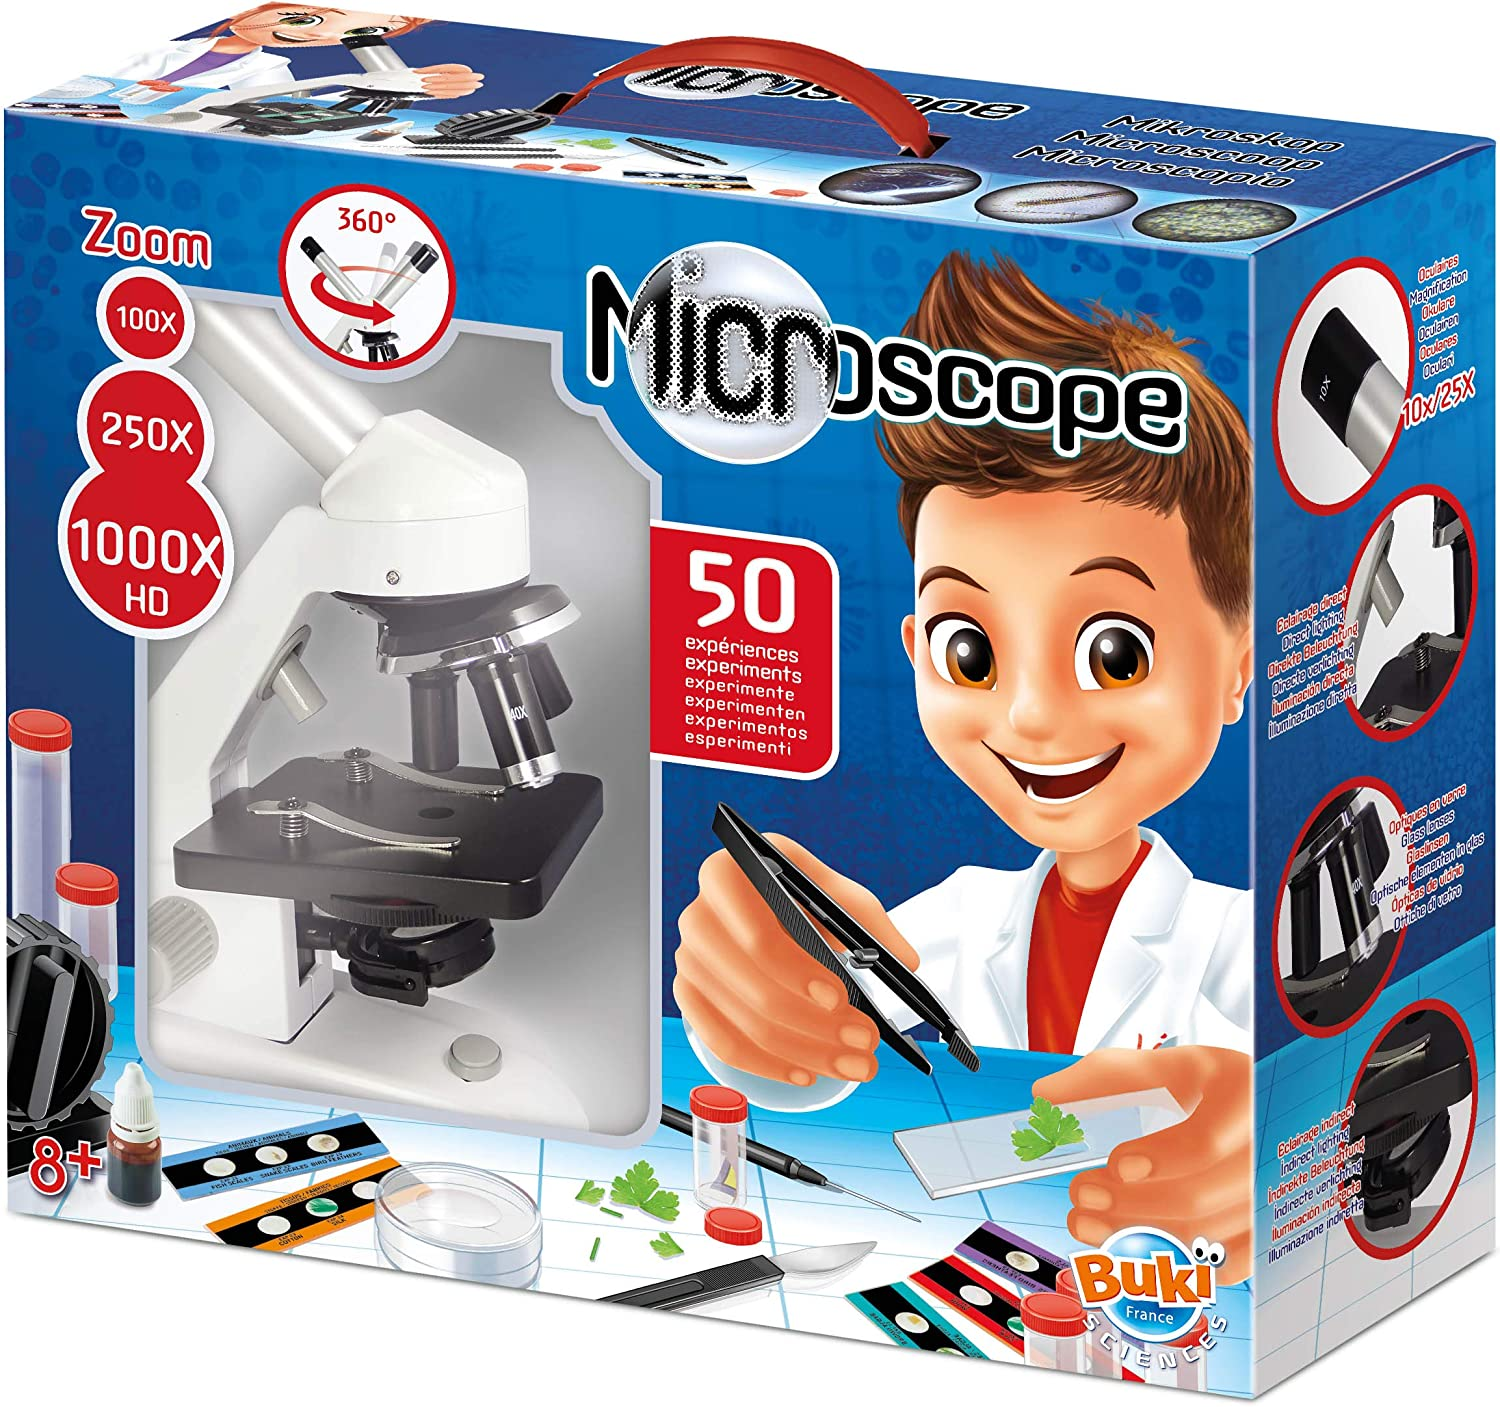 BUKI France MR600 50-Experiment Microscope Educational Toy